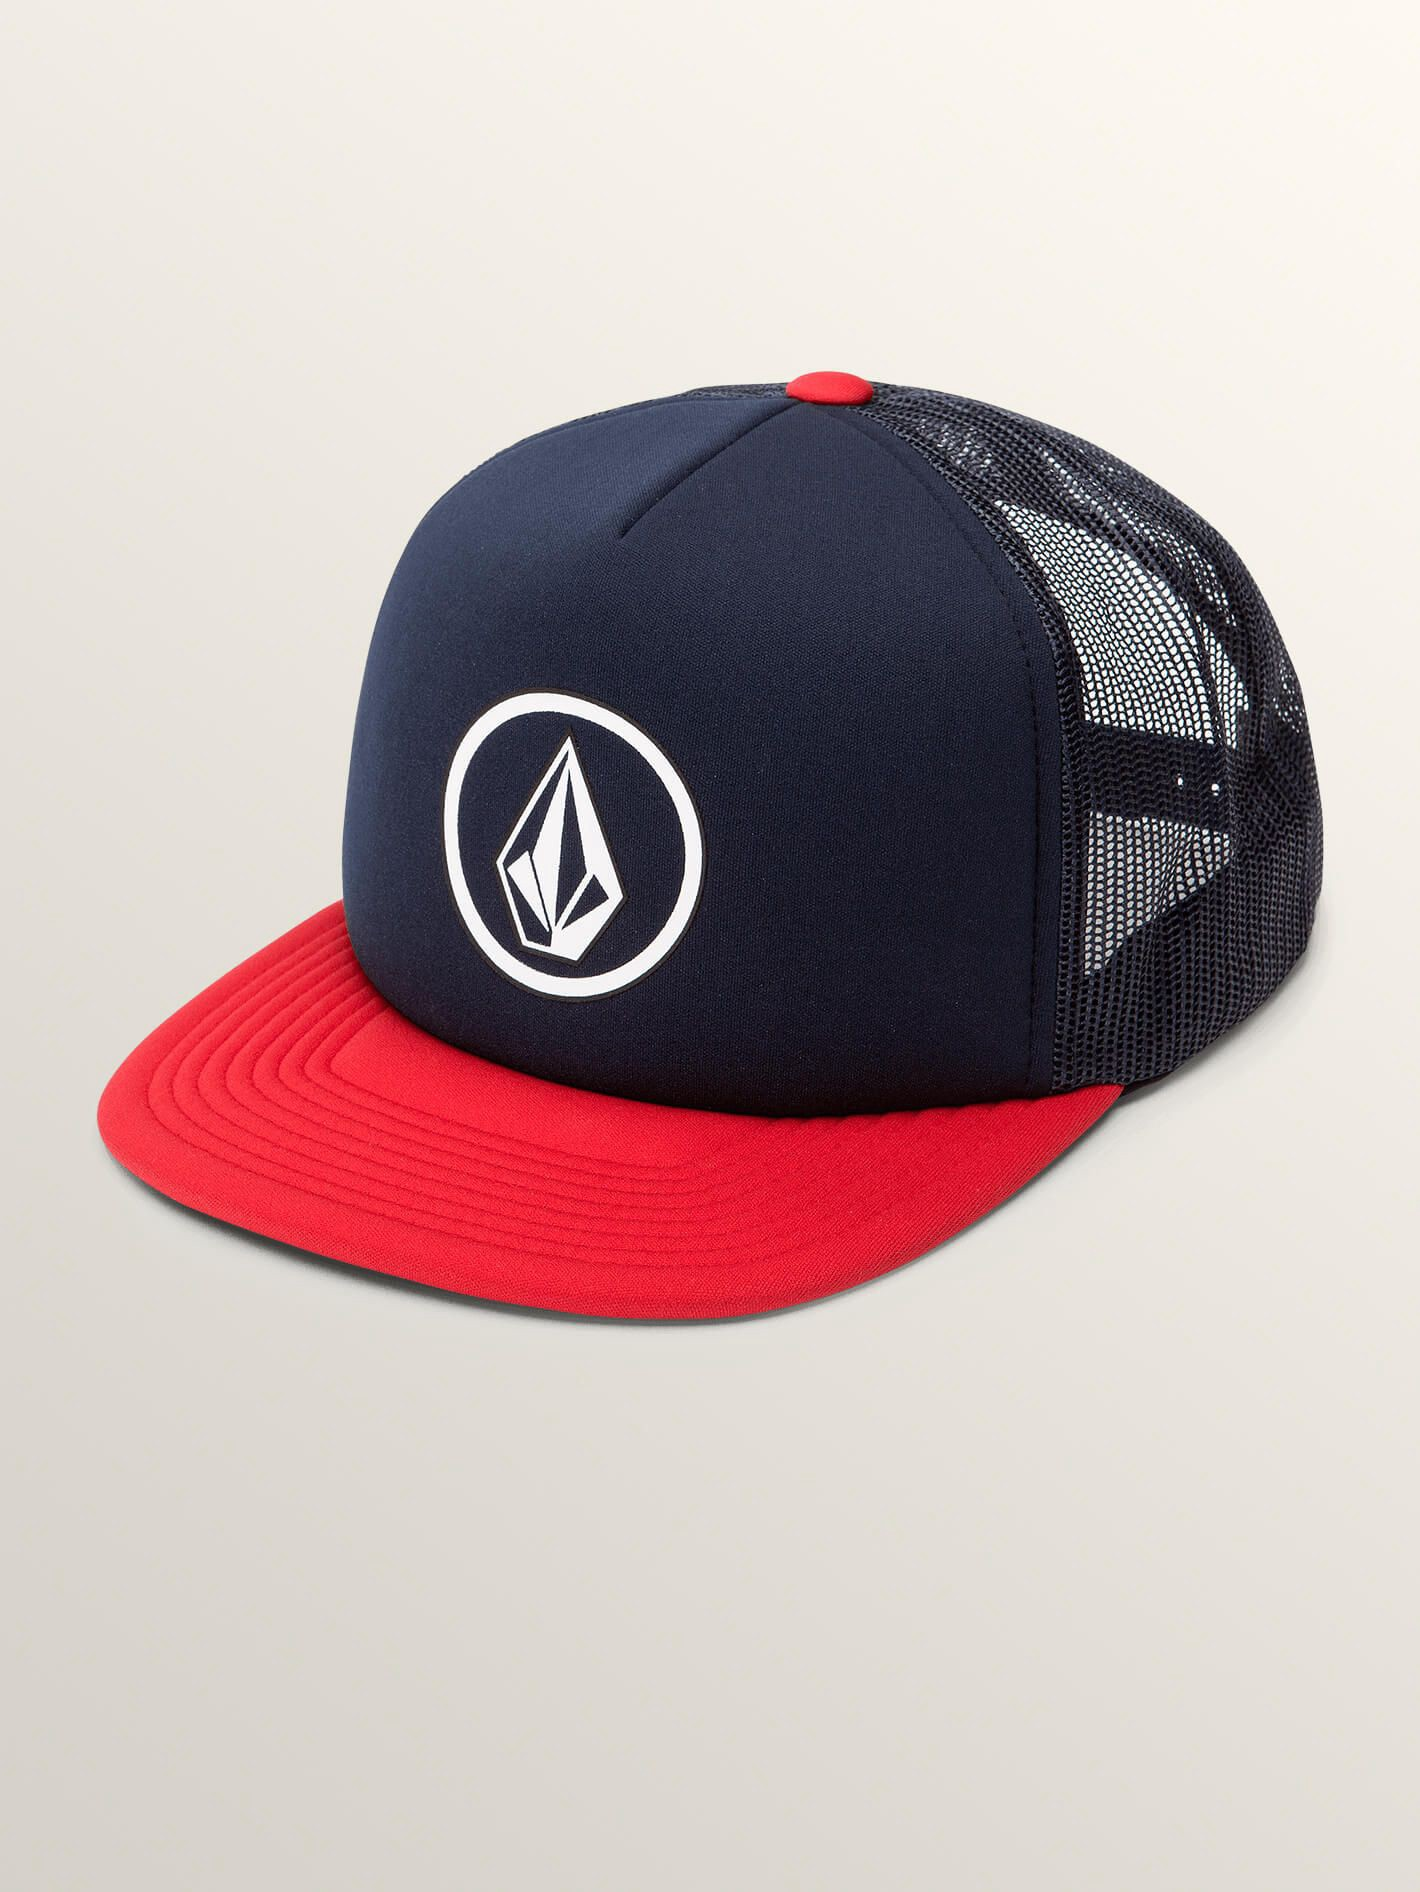 4a80faefa877 Volcom Full Frontal Cheese Hat - Engine Red O/S | Products | Hats ...